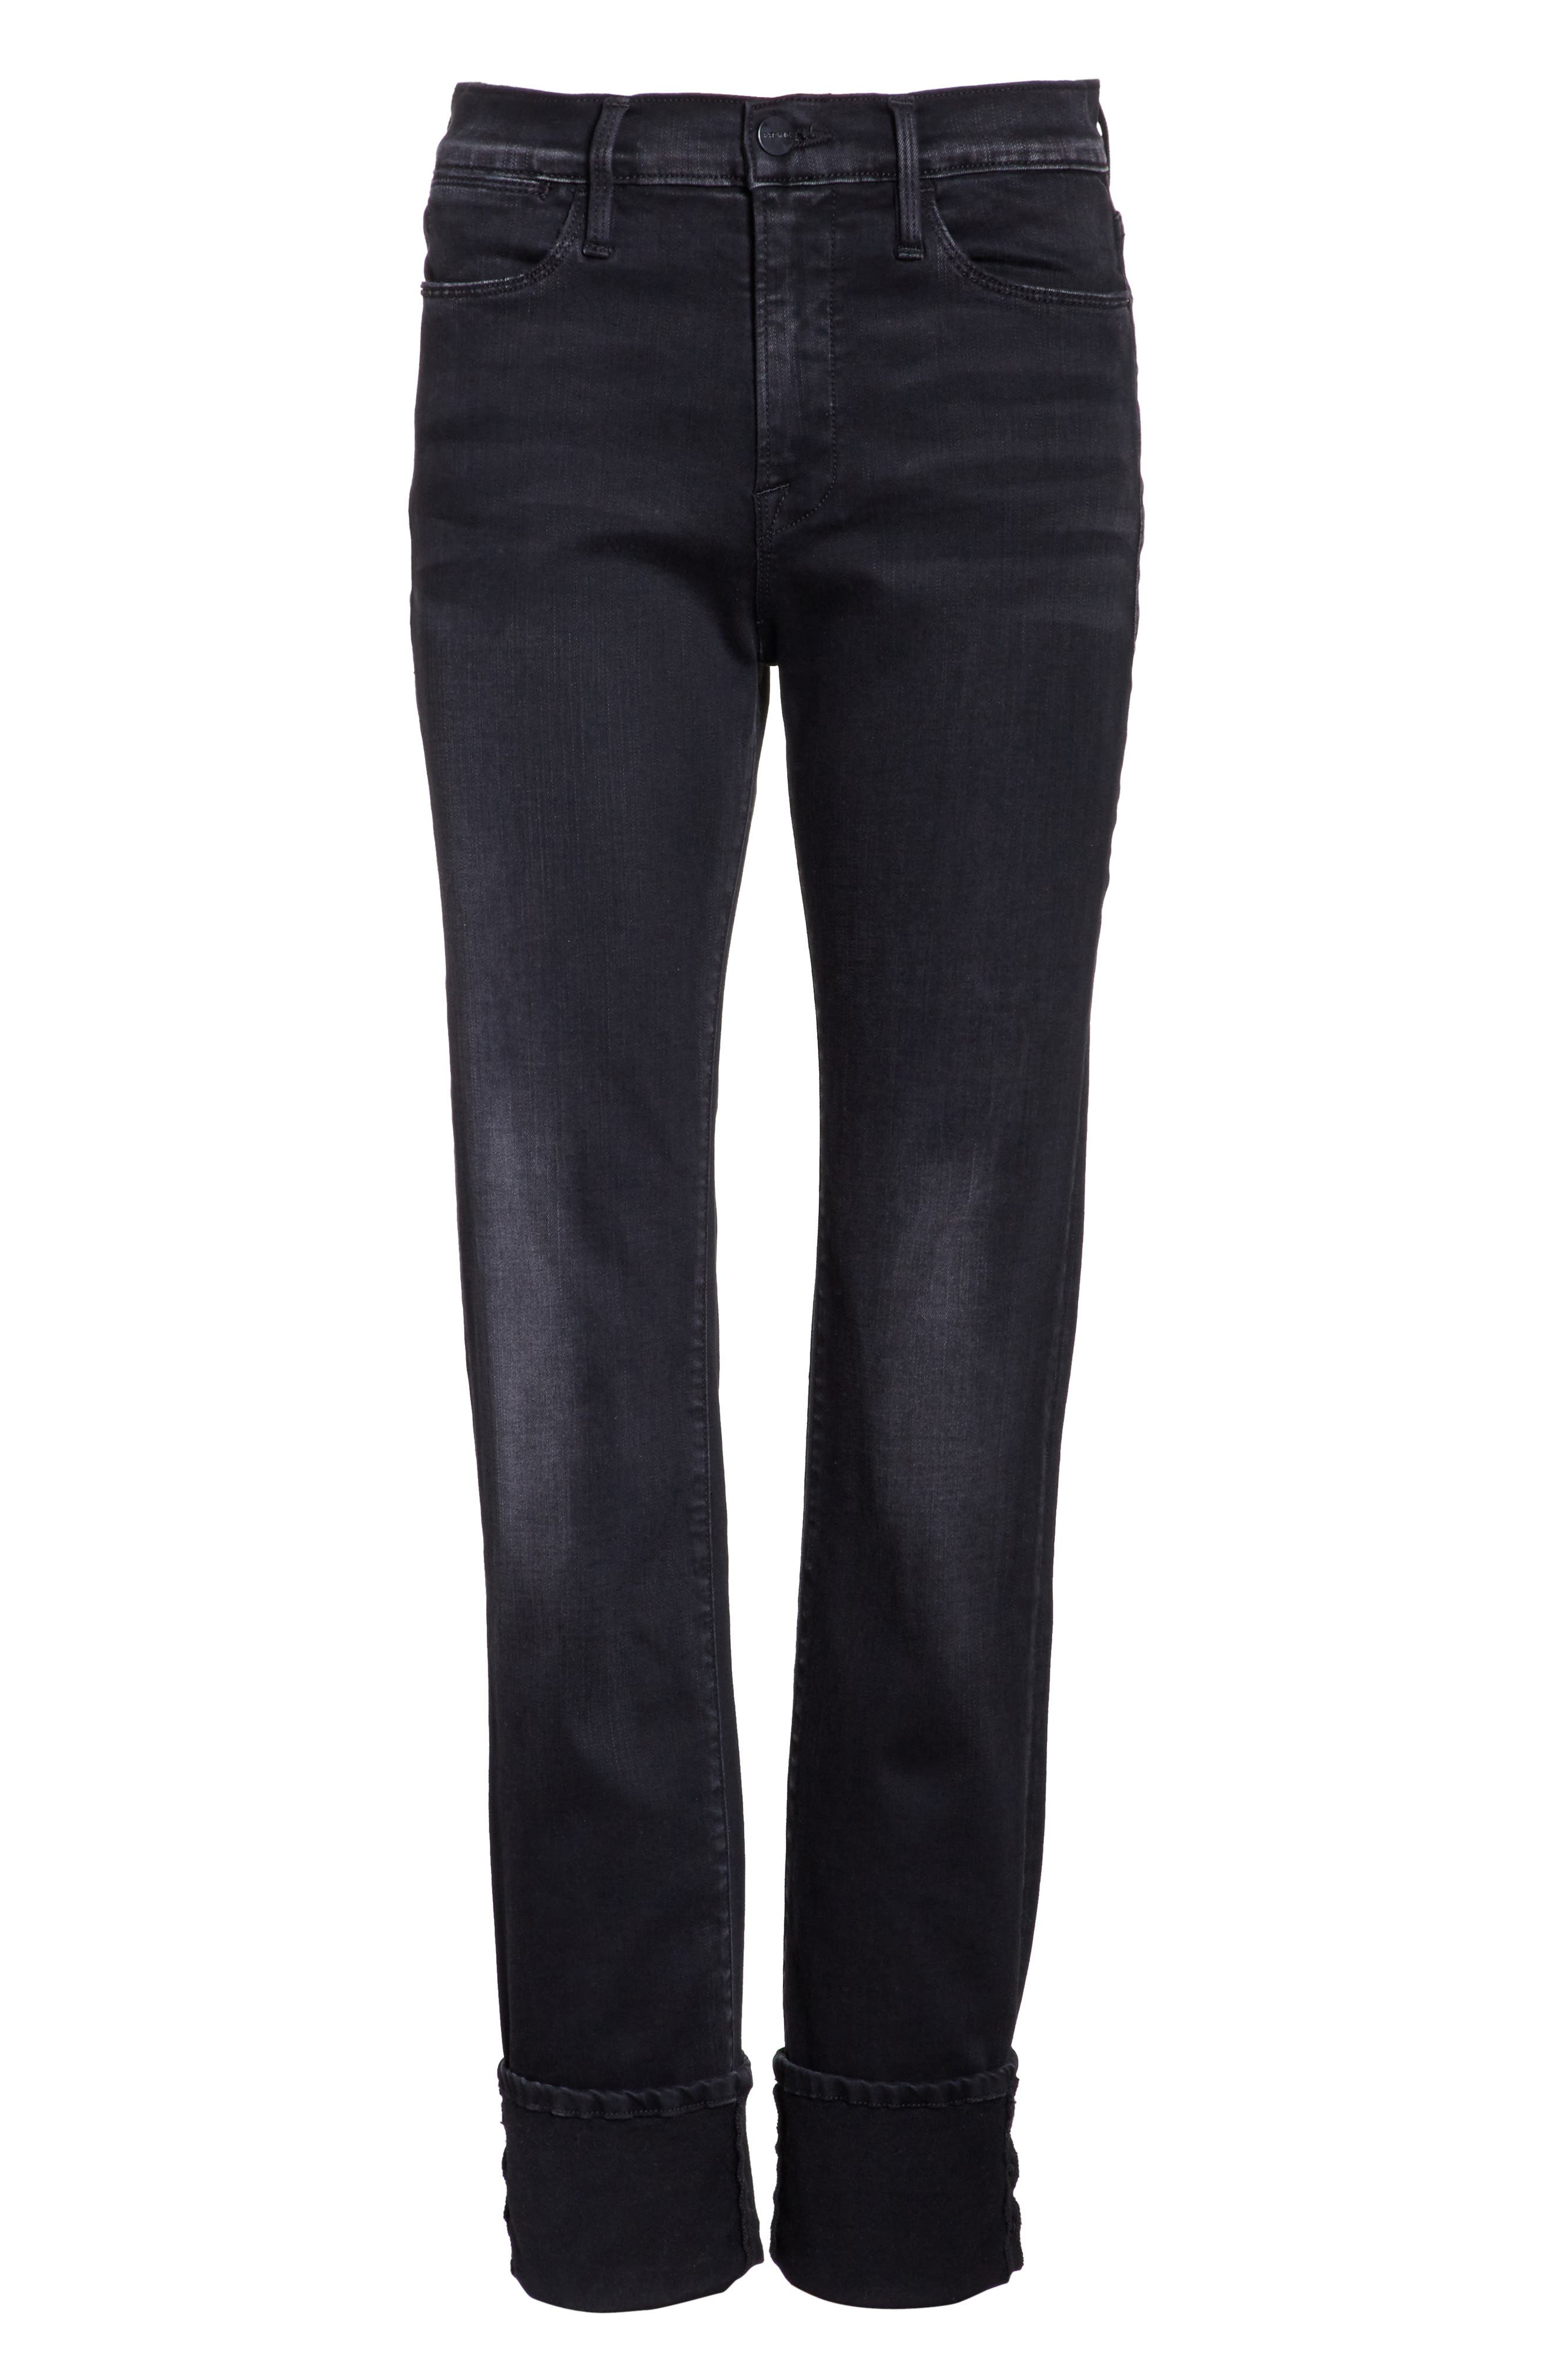 Le High Straight Leg Cuffed Jeans,                             Alternate thumbnail 6, color,                             001